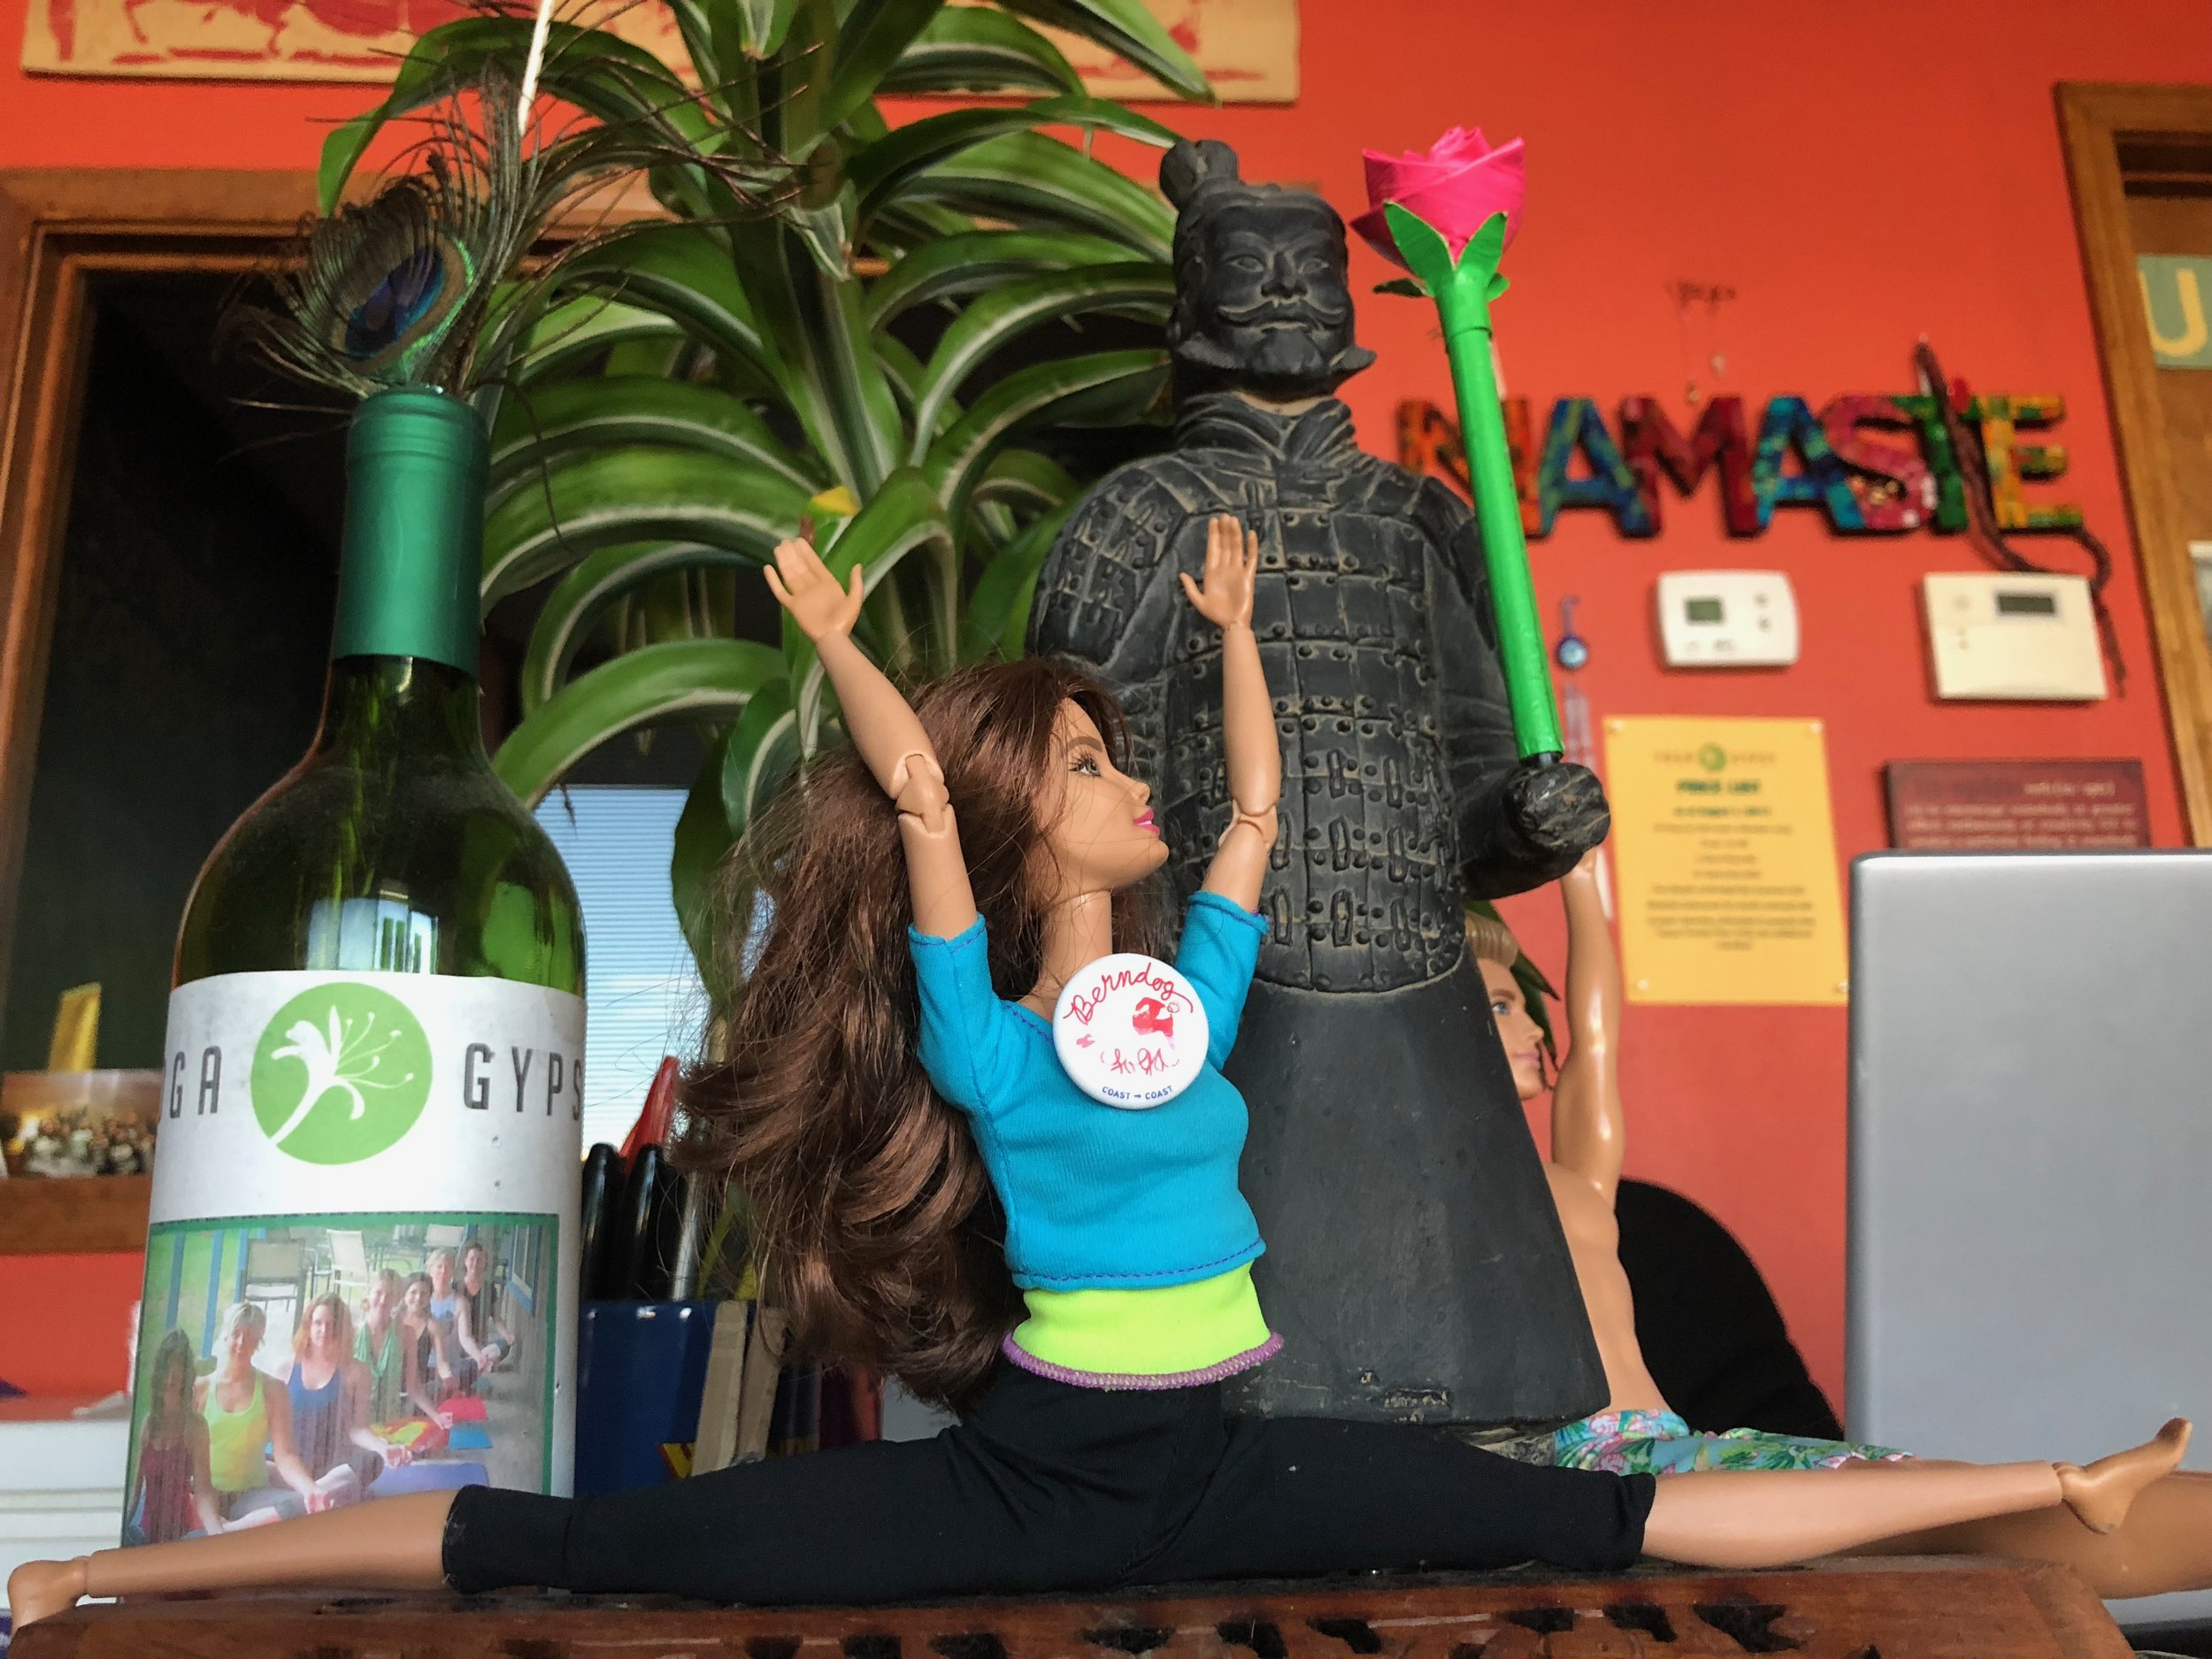 Adorable action figures at Yoga Gypsy in Springdale